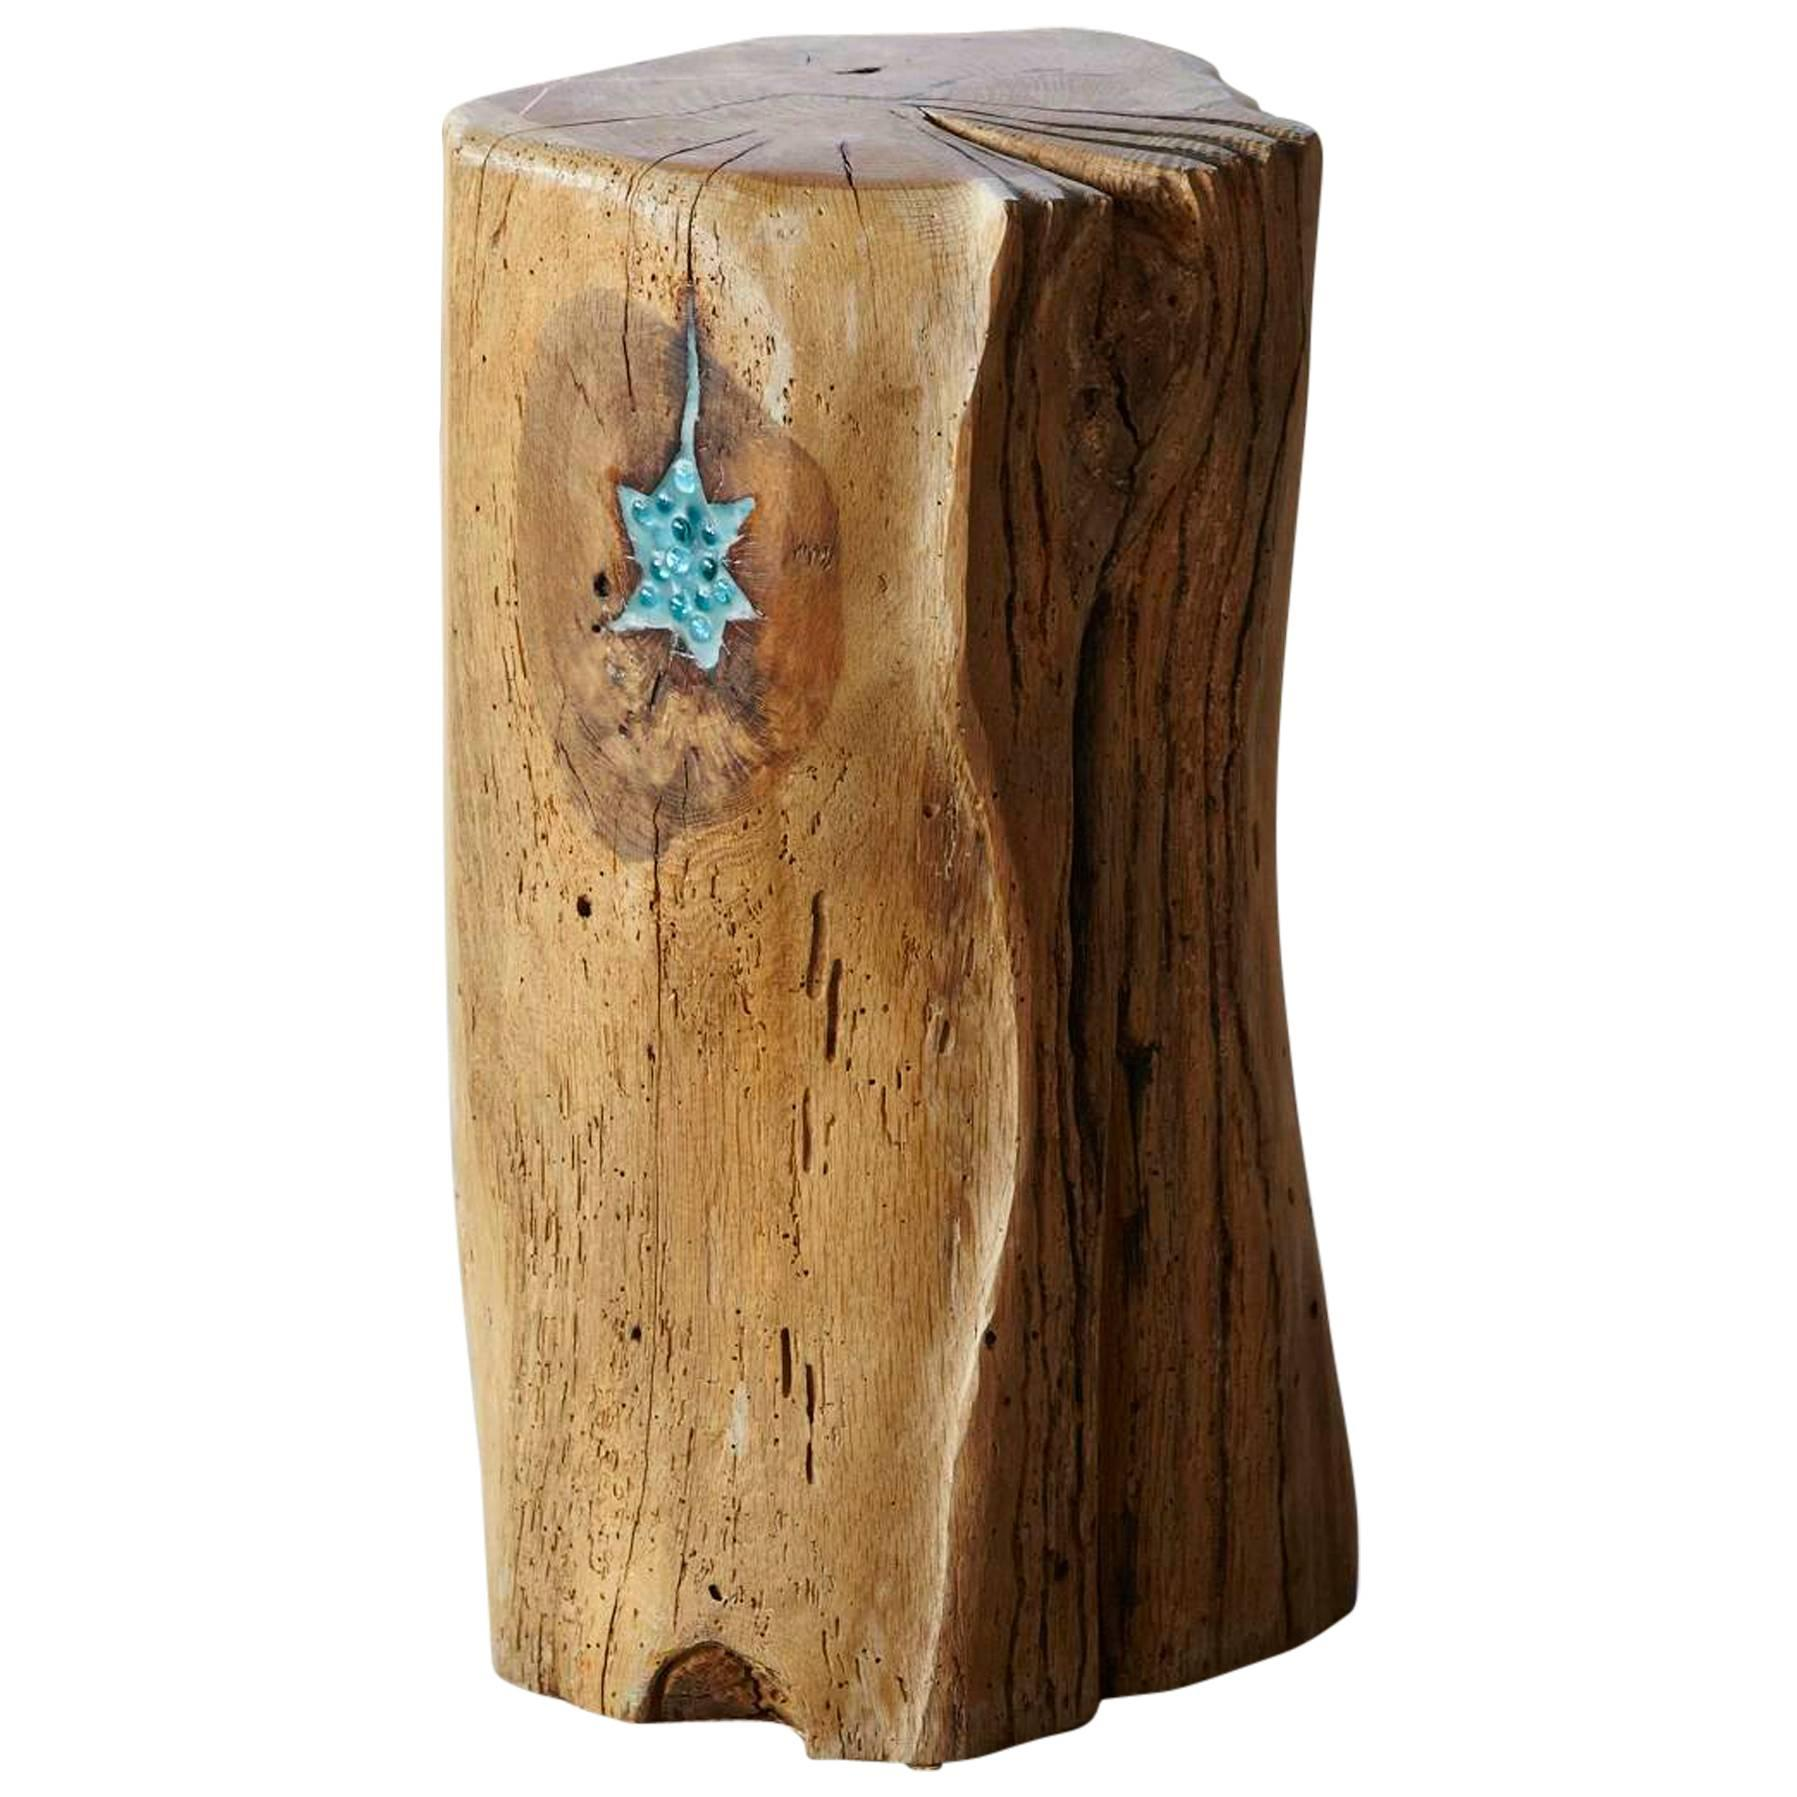 Stern, Stool by Hanni Dietrich - Carved Oak Stool with Resin Inlay